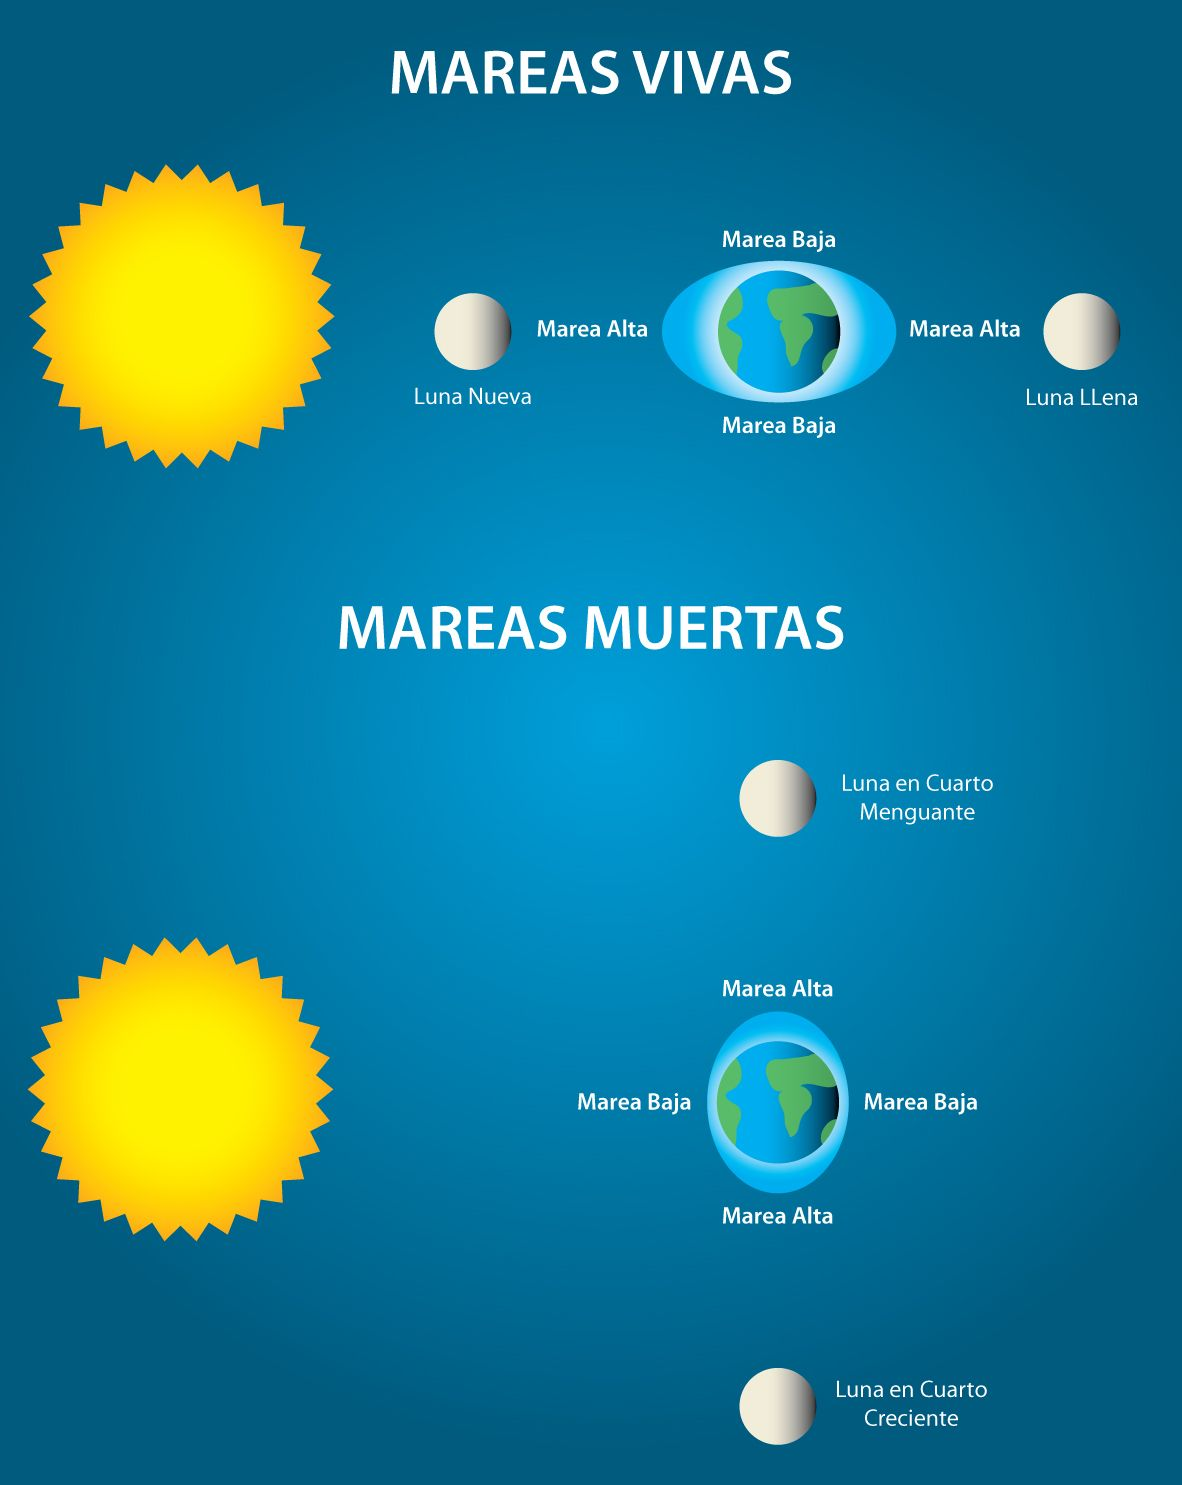 Pin By Lourdes Ruiz Reig On Costas Pinterest Science And Cosmos Electricity Generation Chemwiki Visit